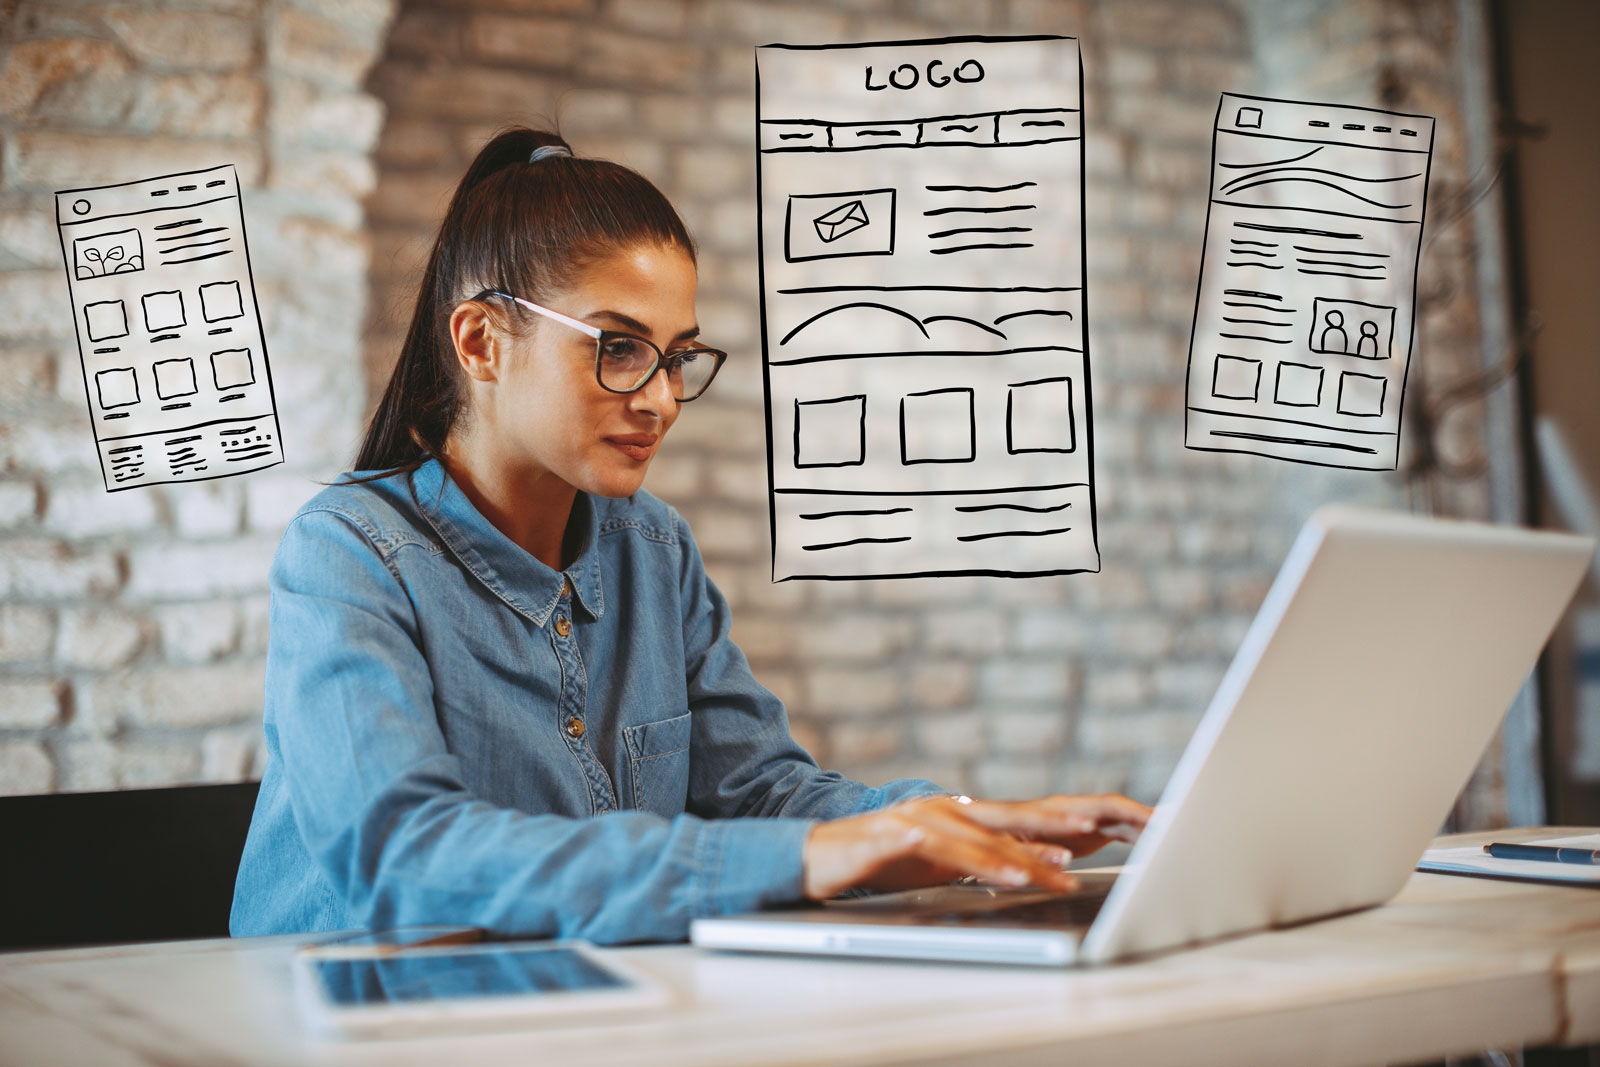 woman with glasses working on computer surrounded by wireframe drawings of websites